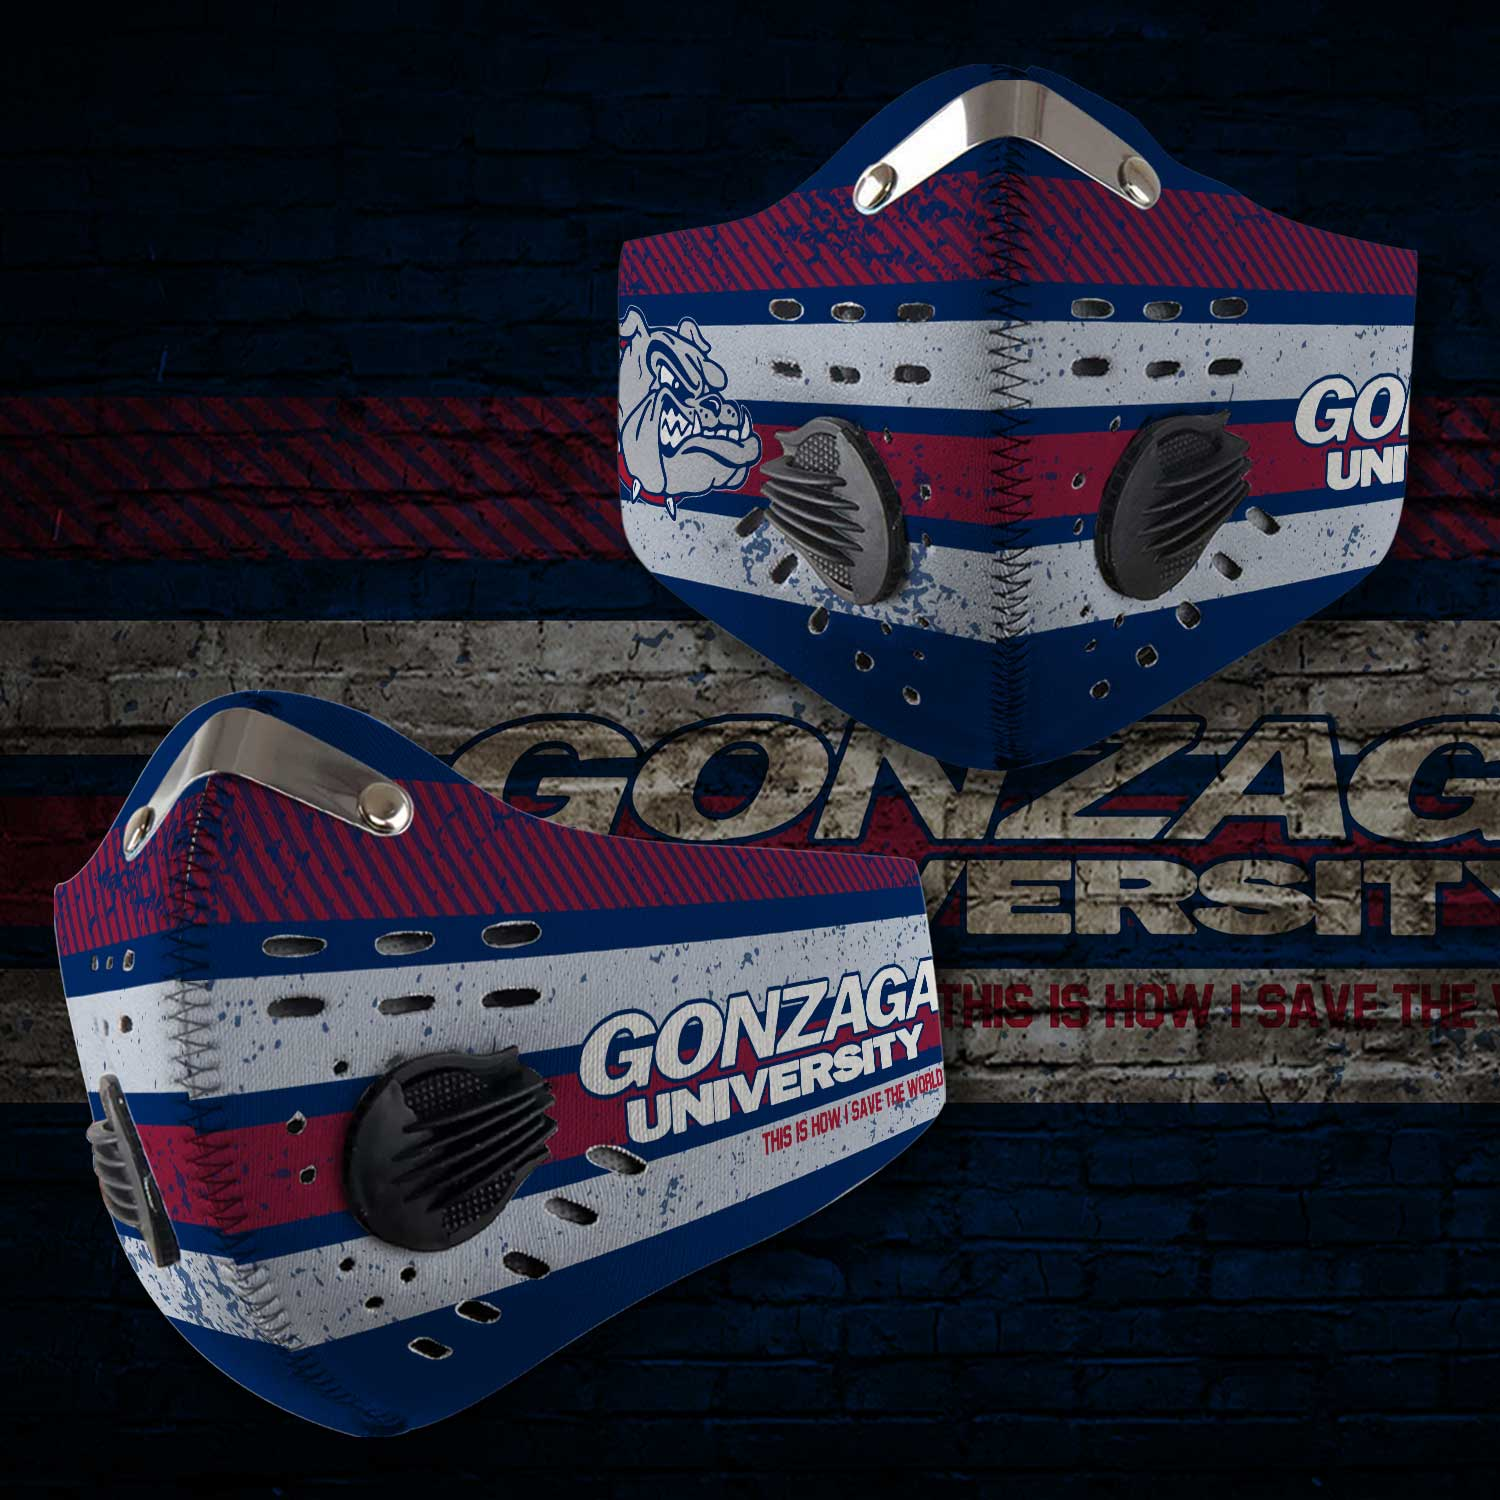 Gonzaga bulldogs men's basketball this is how i save the world face mask 2